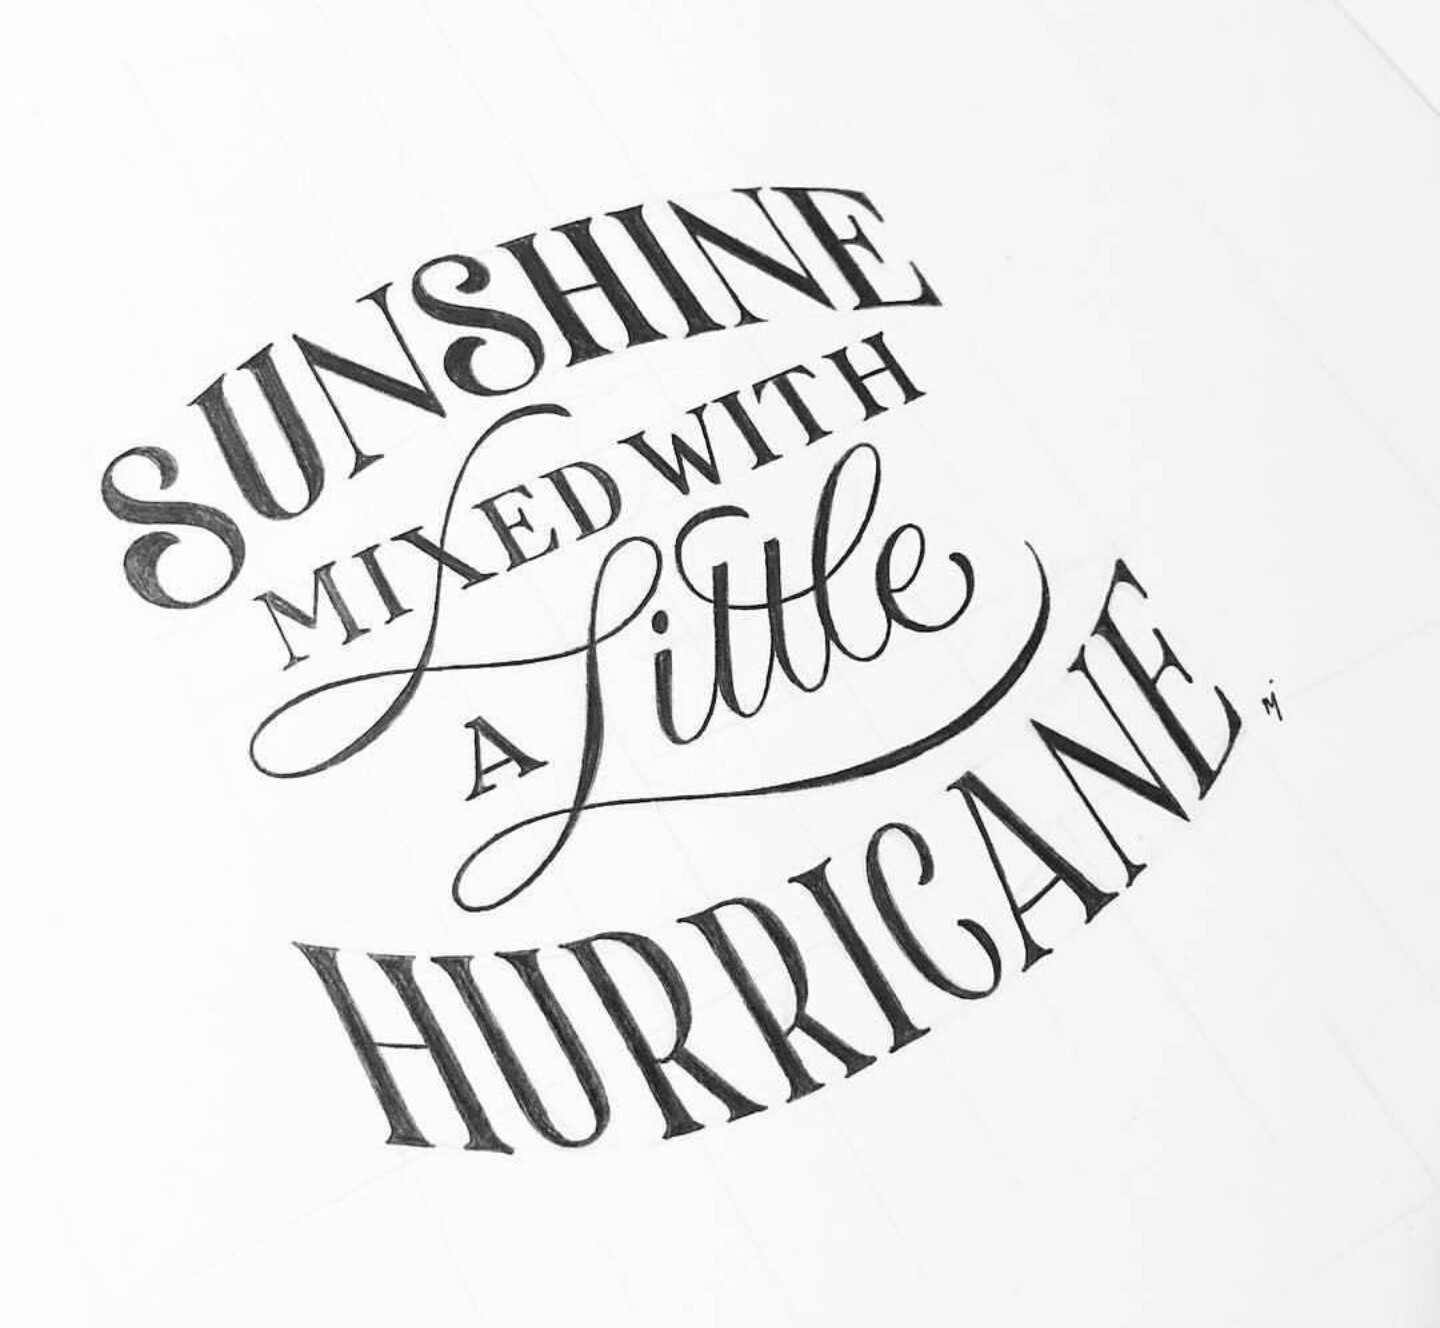 1440x1328 Pin By Libby Villalobos On Handlettering